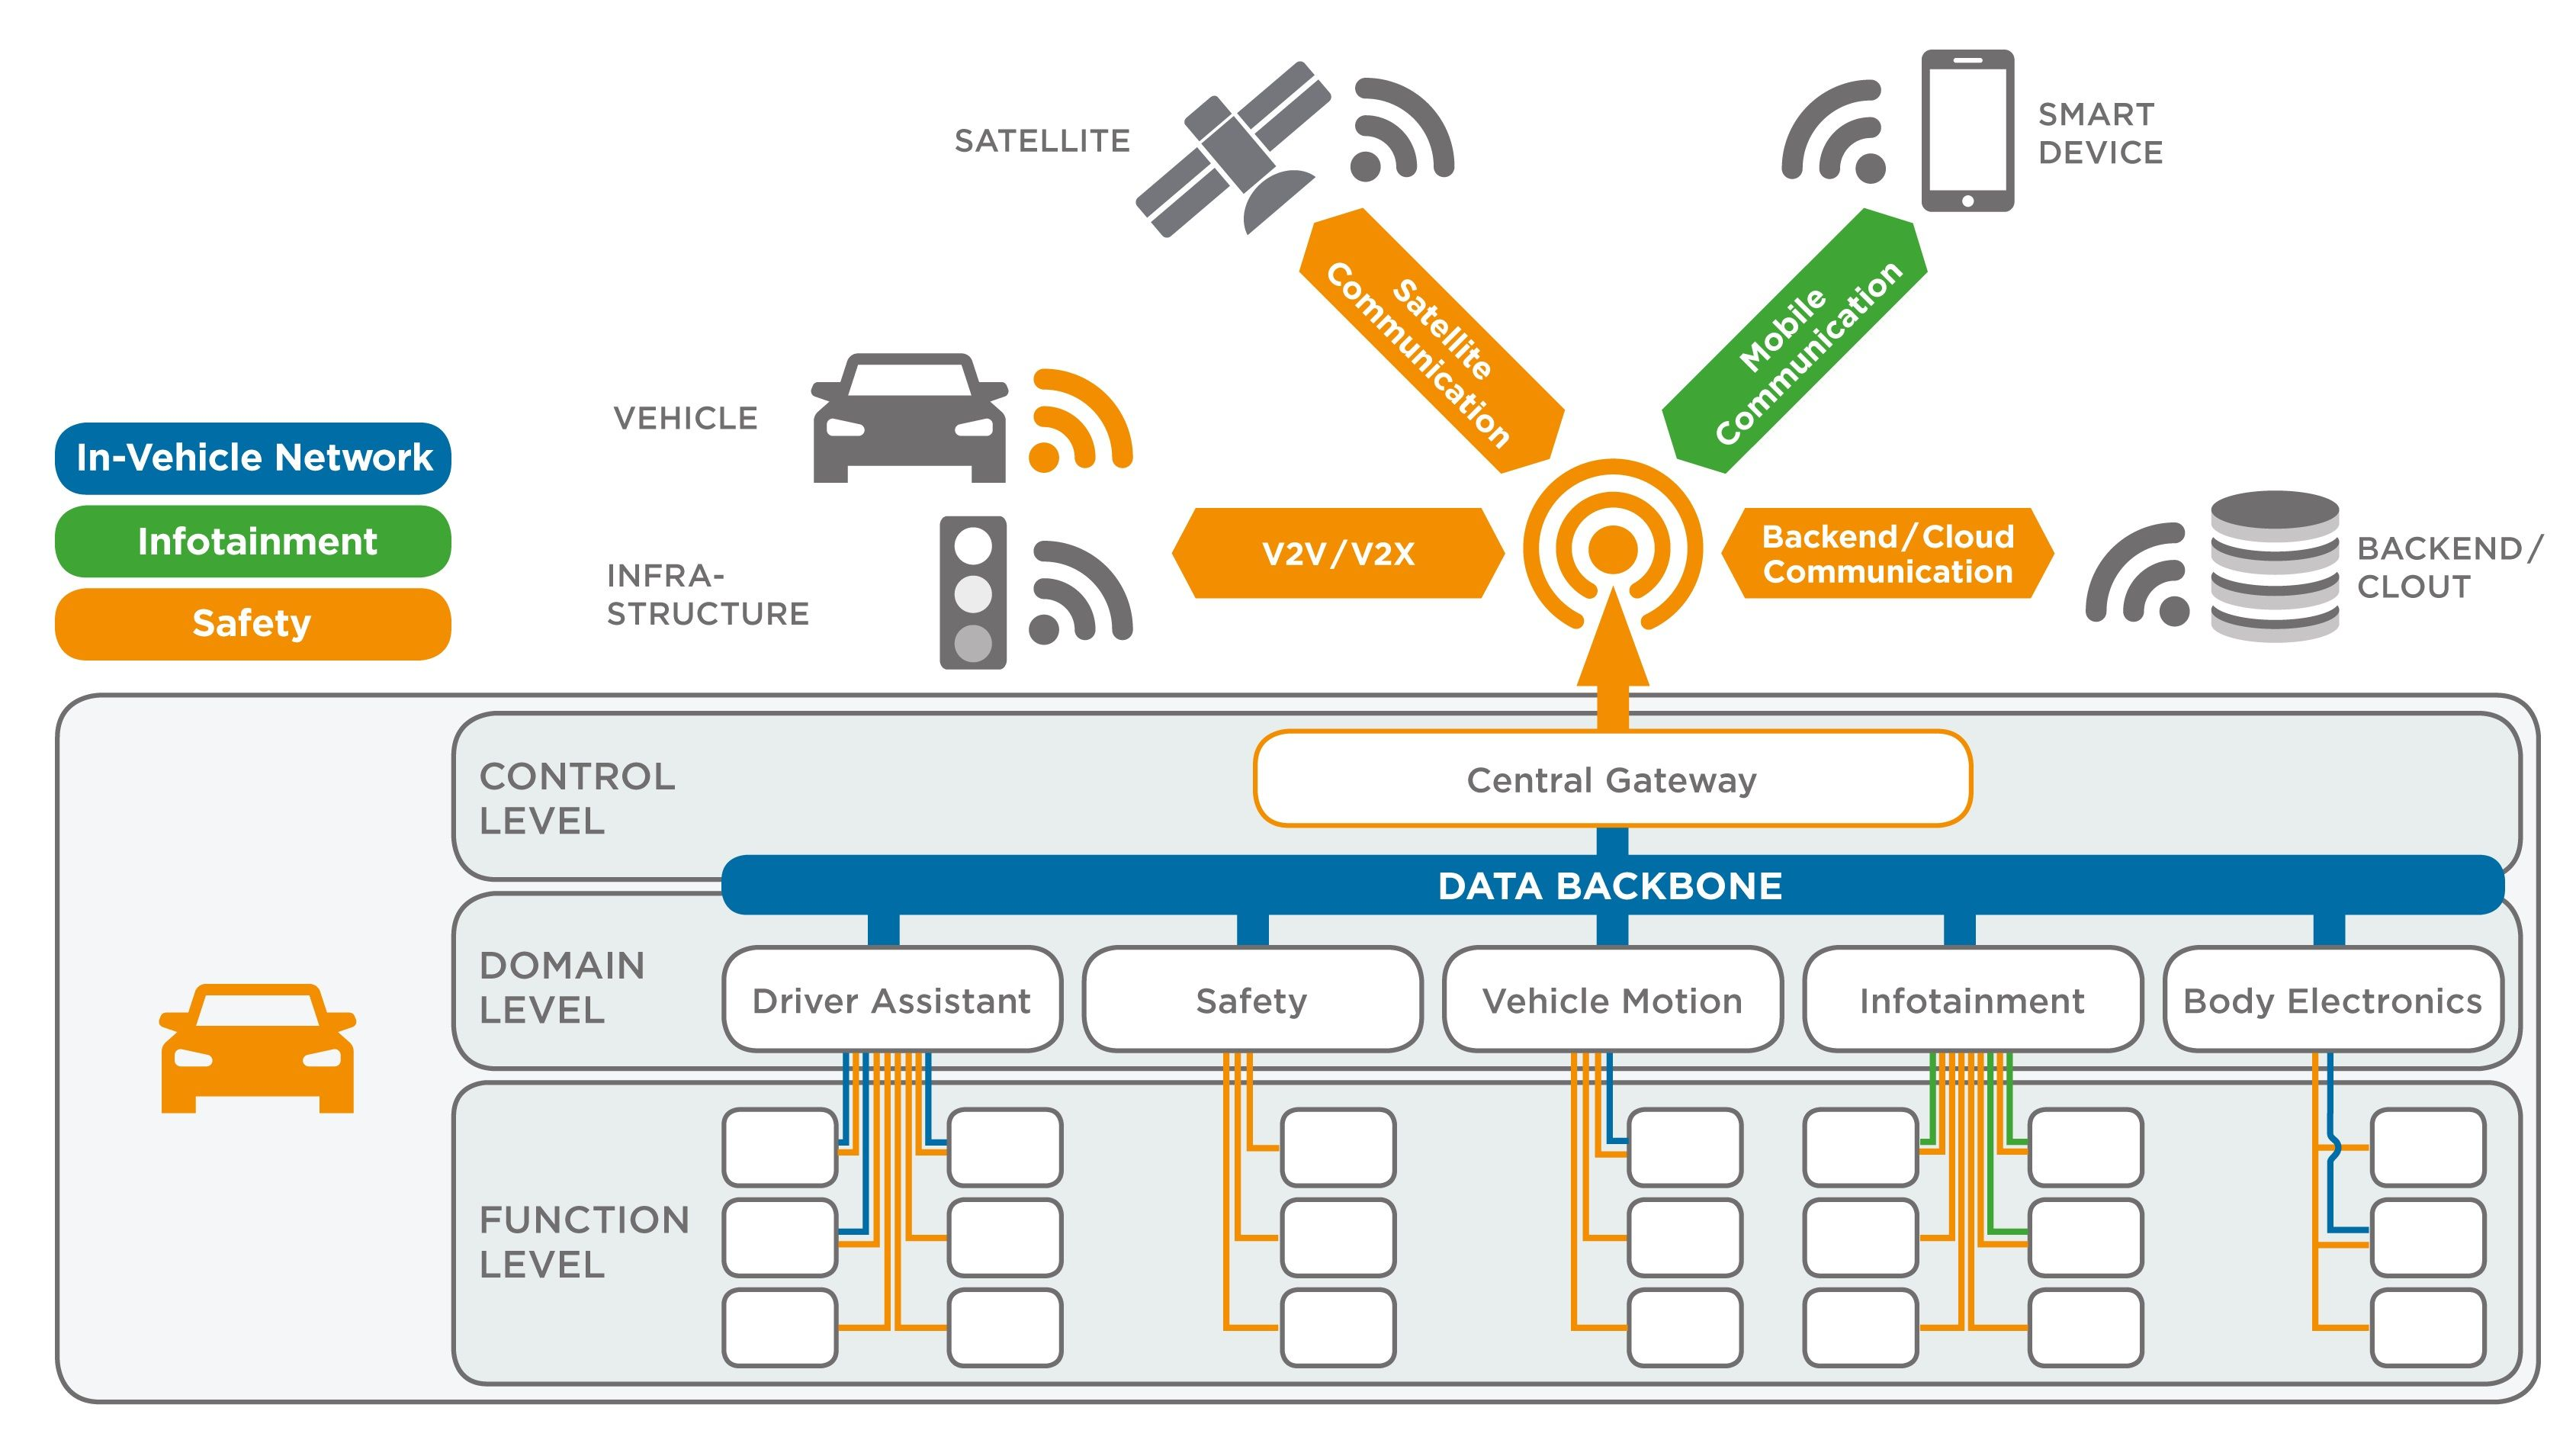 6 Key Connectivity Requirements Of Autonomous Driving - IEEE